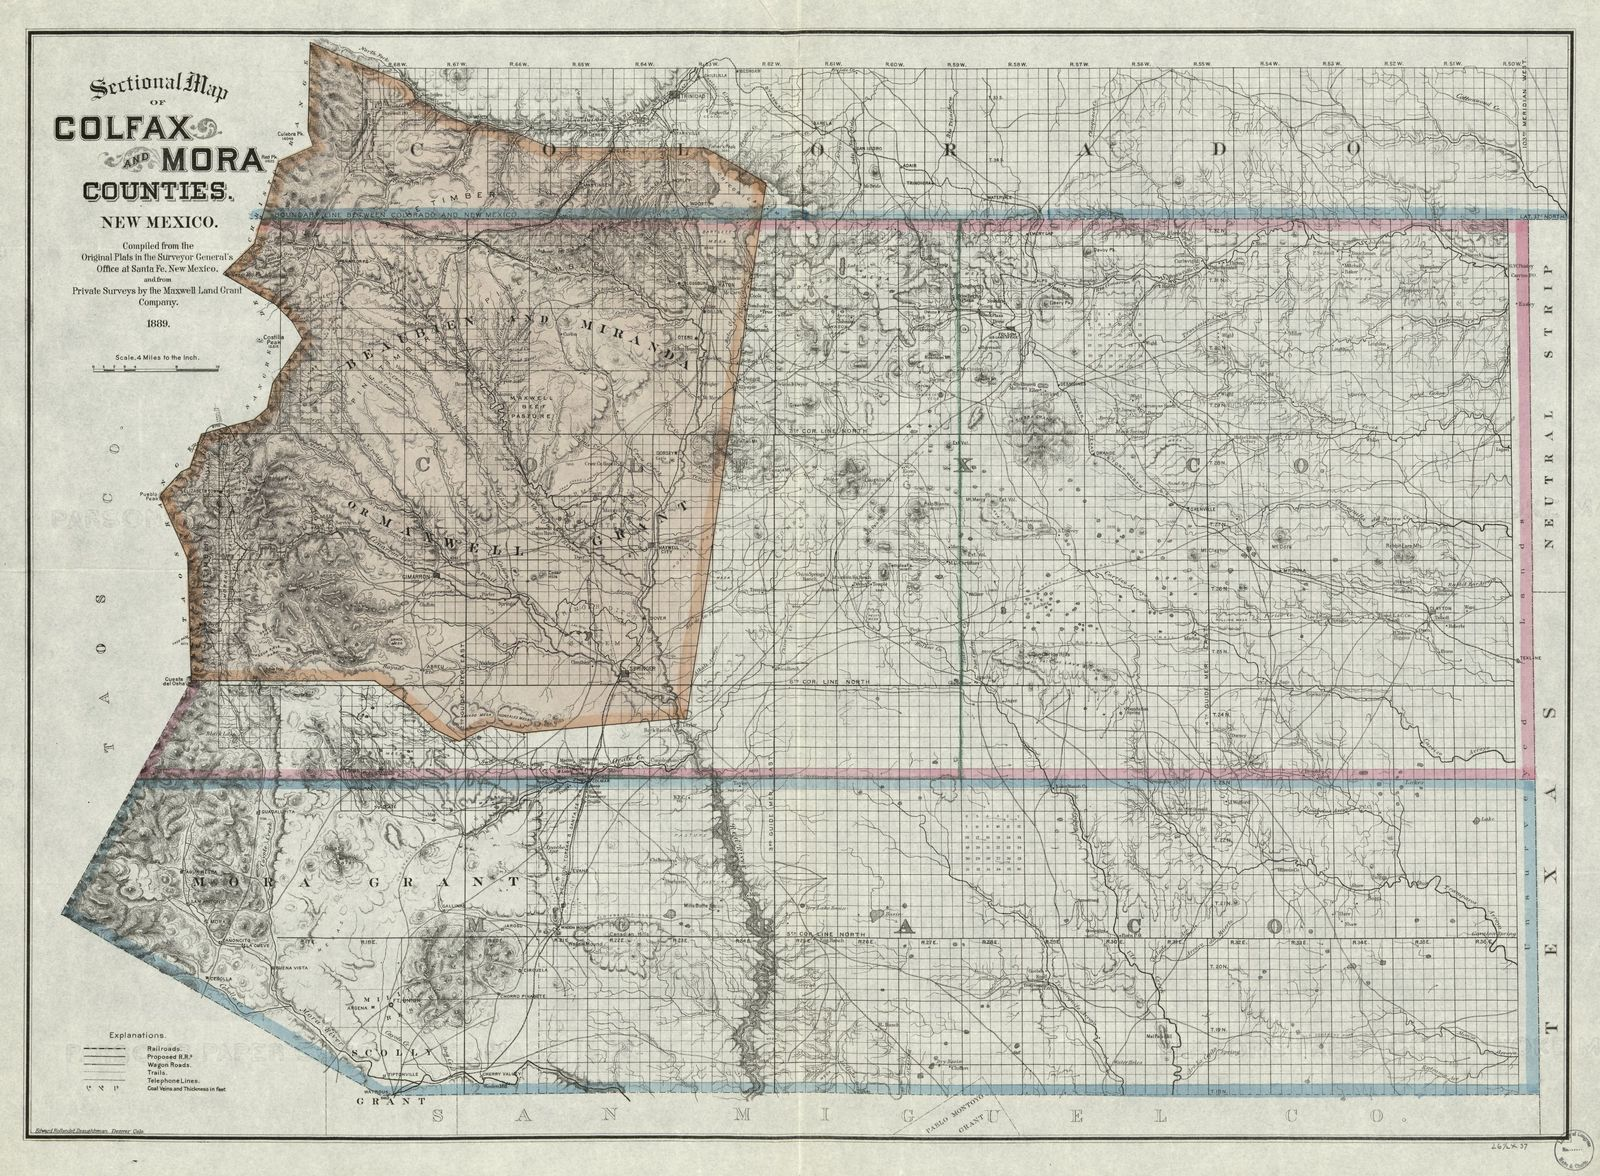 Colfax Wisconsin Map.Sectional Map Of Colfax And Mora Counties New Mexico Picryl